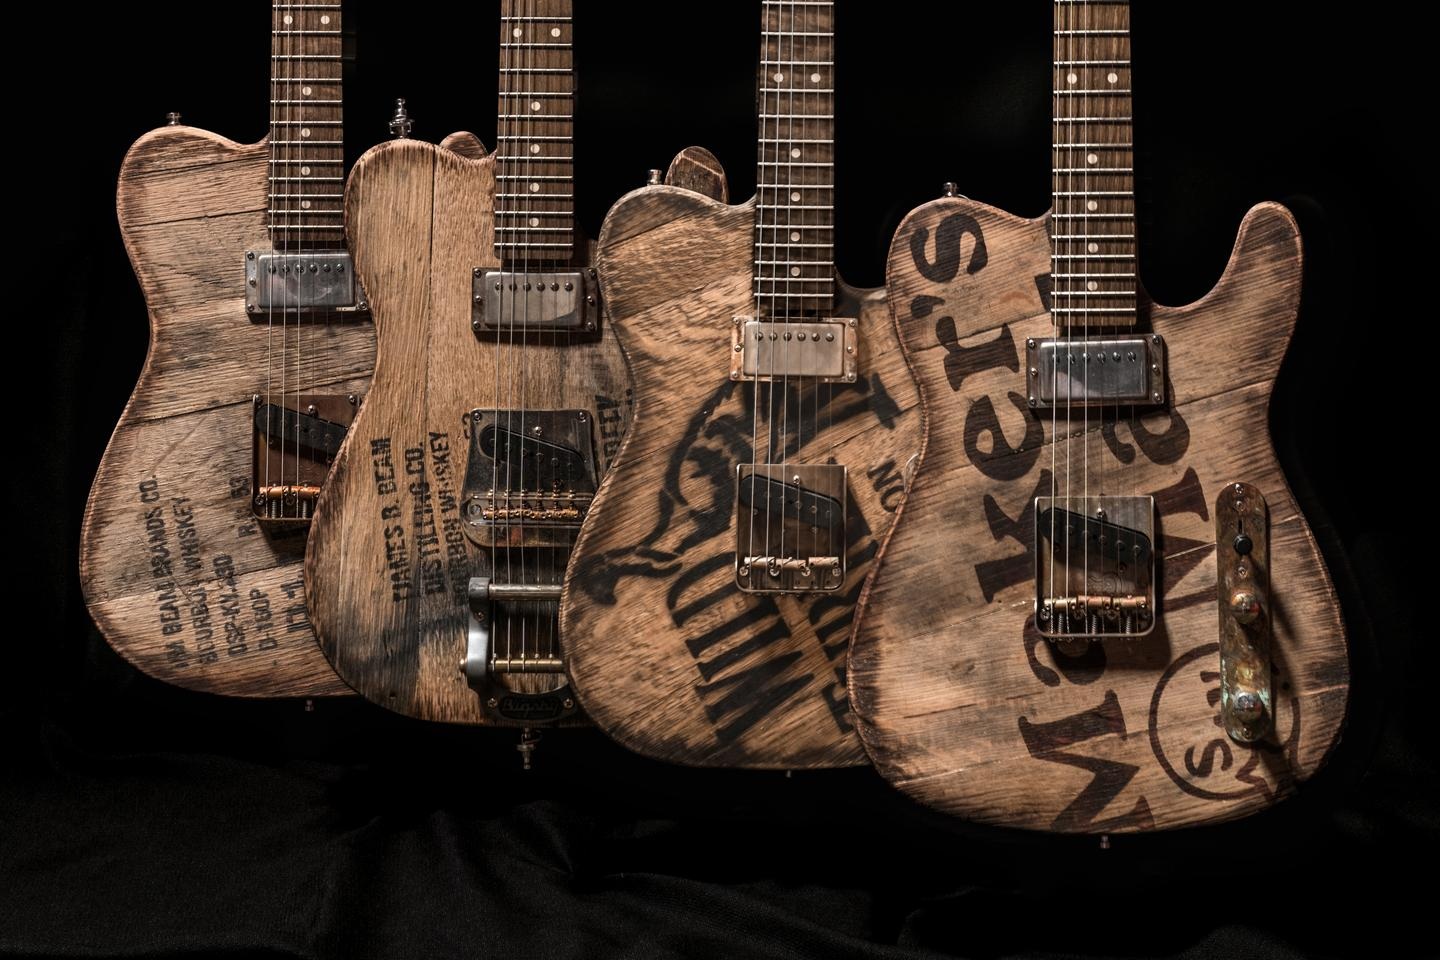 Each Barrel Top Custom T-Style Guitar is made using wood from a different Kentucky whiskey distillery